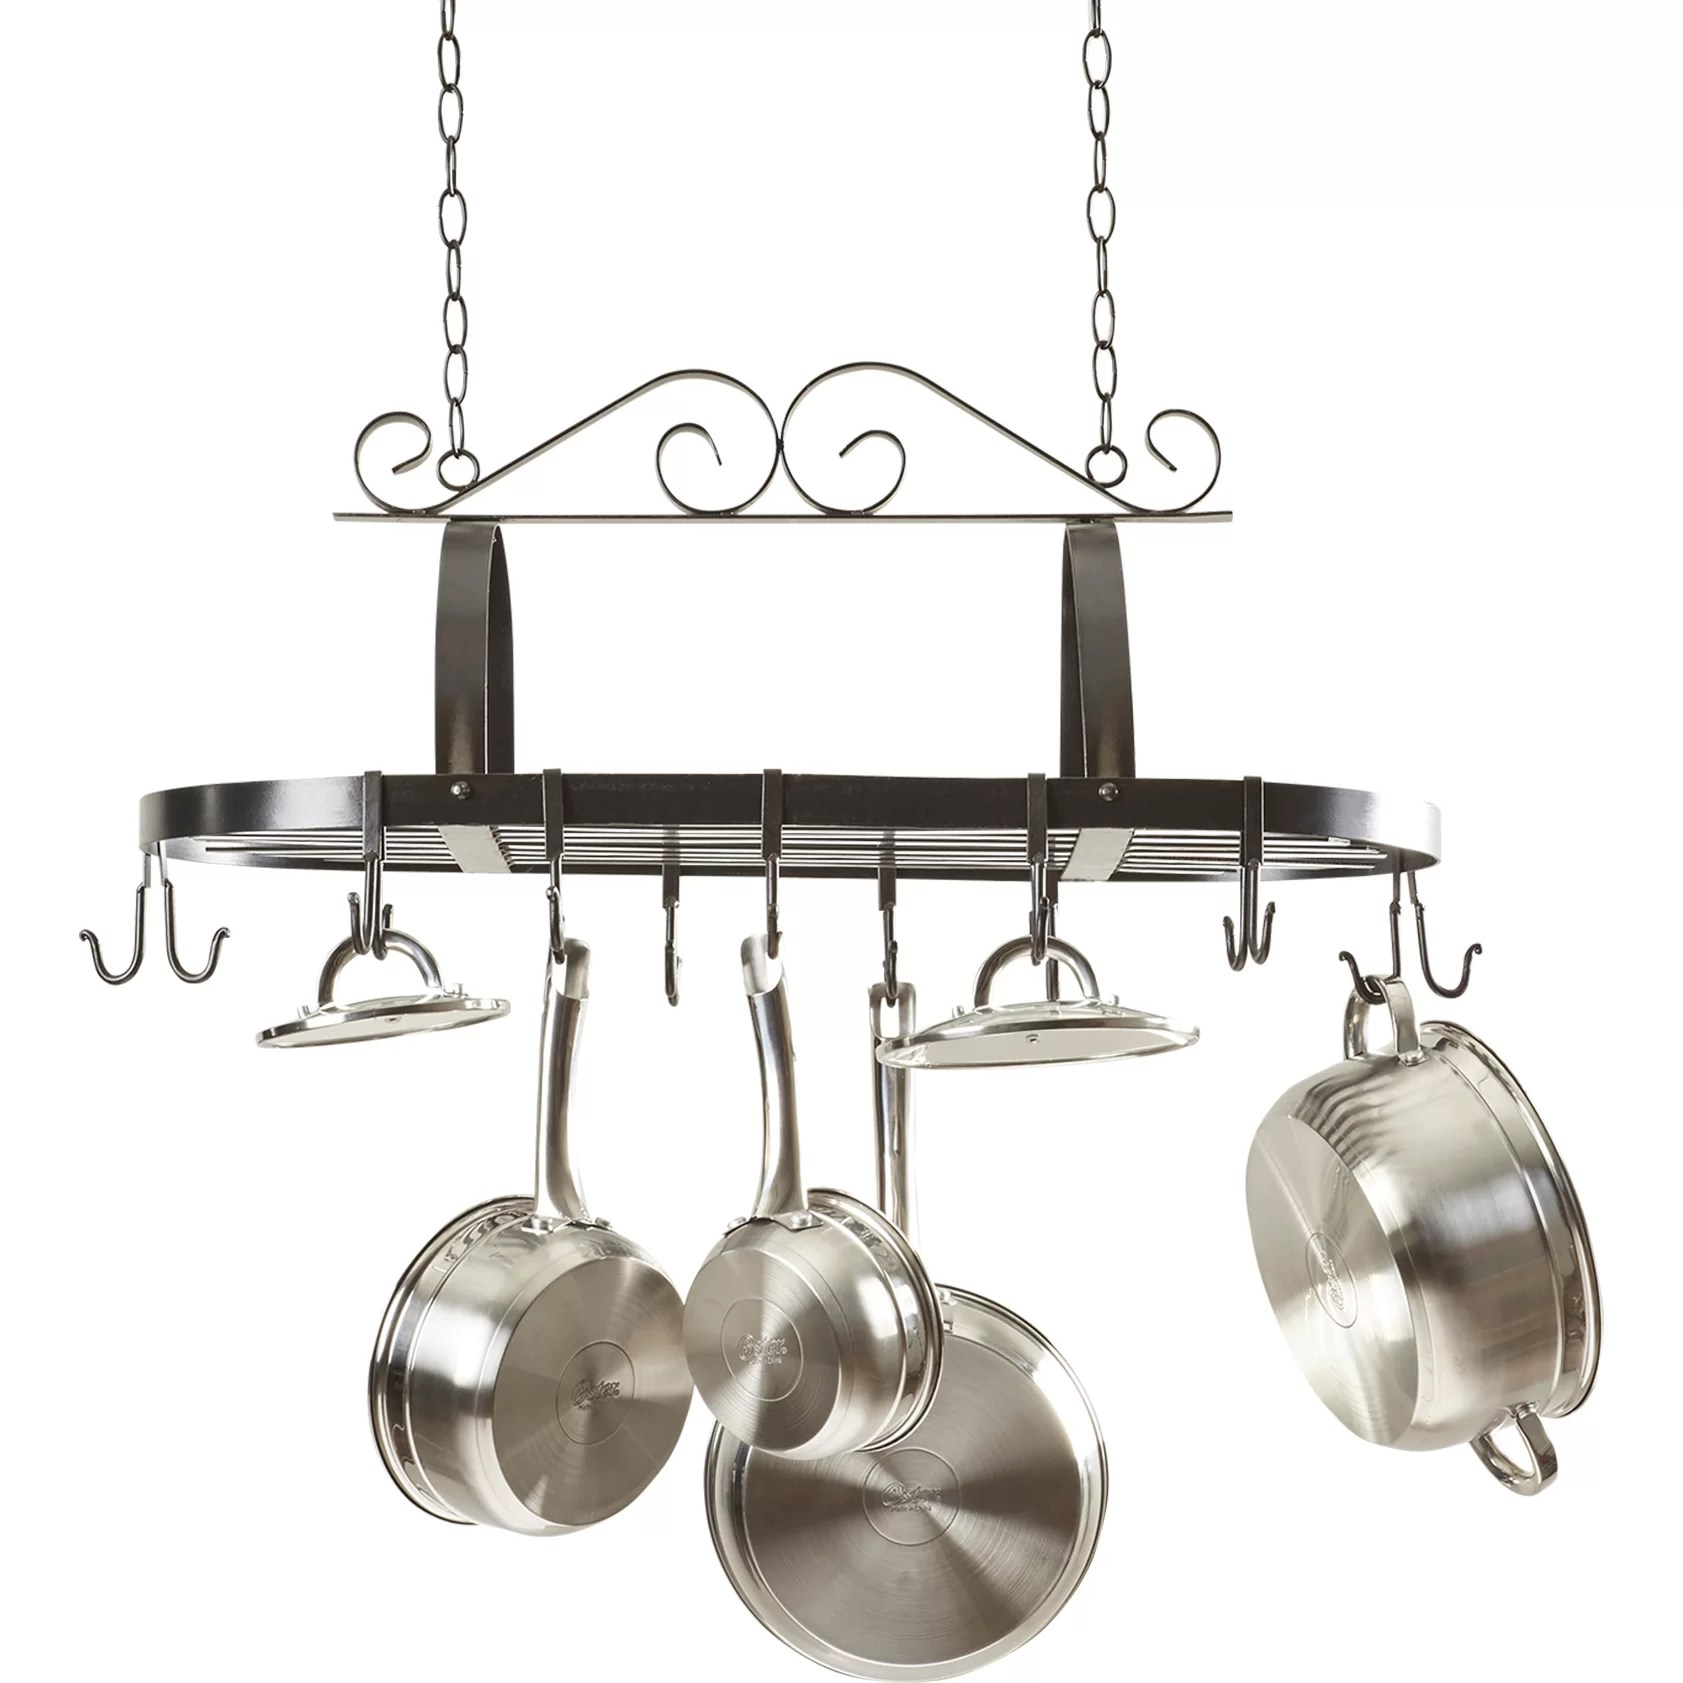 Darby Home Co Kitchen Hanging Pot Rack  Reviews  Wayfair